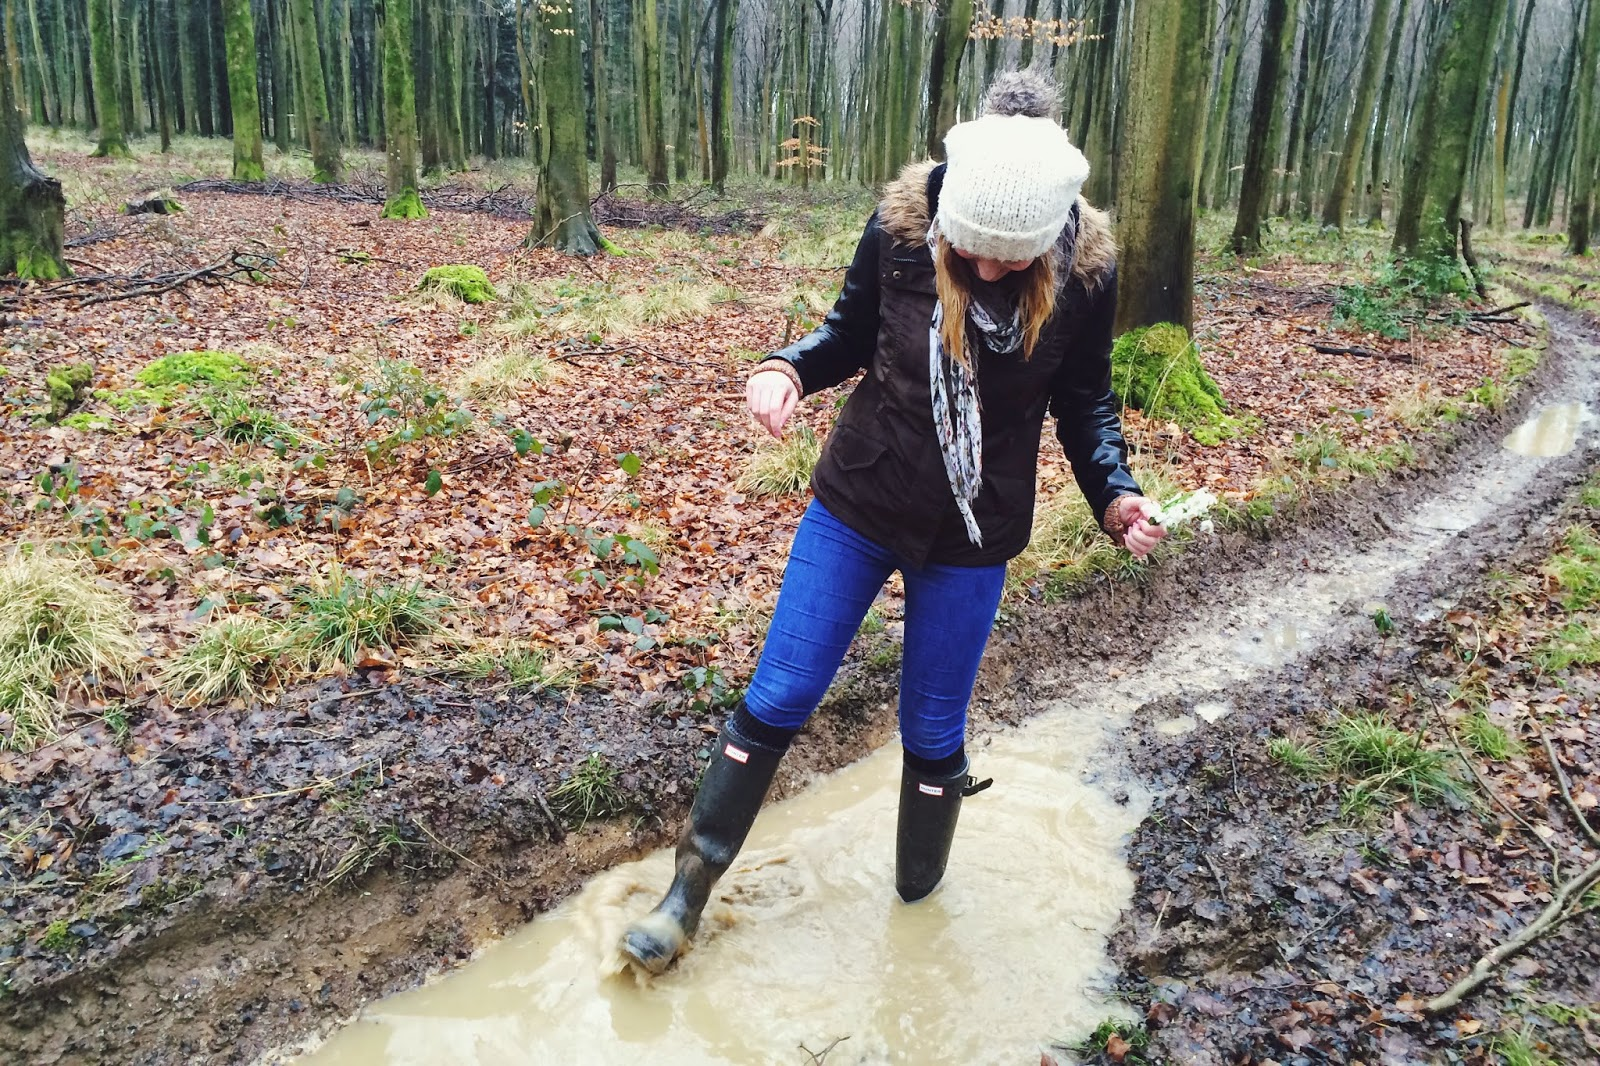 FashionFake, a UK fashion and lifestyle blog. Sundays are best spent relaxing and being cosy - and us country bumpkins love a long walk in the woods before a roast! Read about how we keep warm and happy whilst tough mudding in Hampshire.